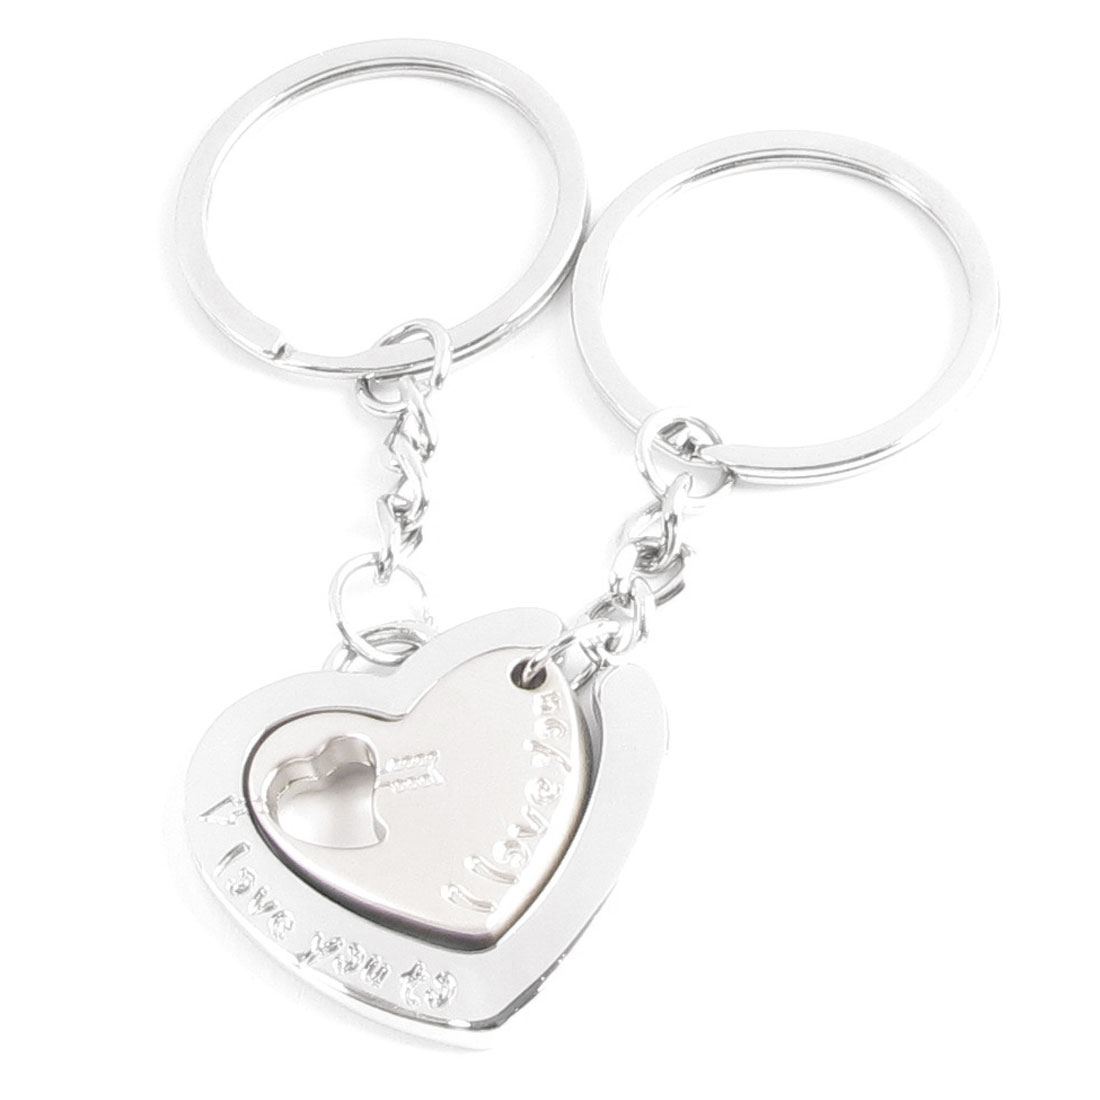 Pair Metal Heart Nest Design Pendent Key Ring Chain Holder for Lovers